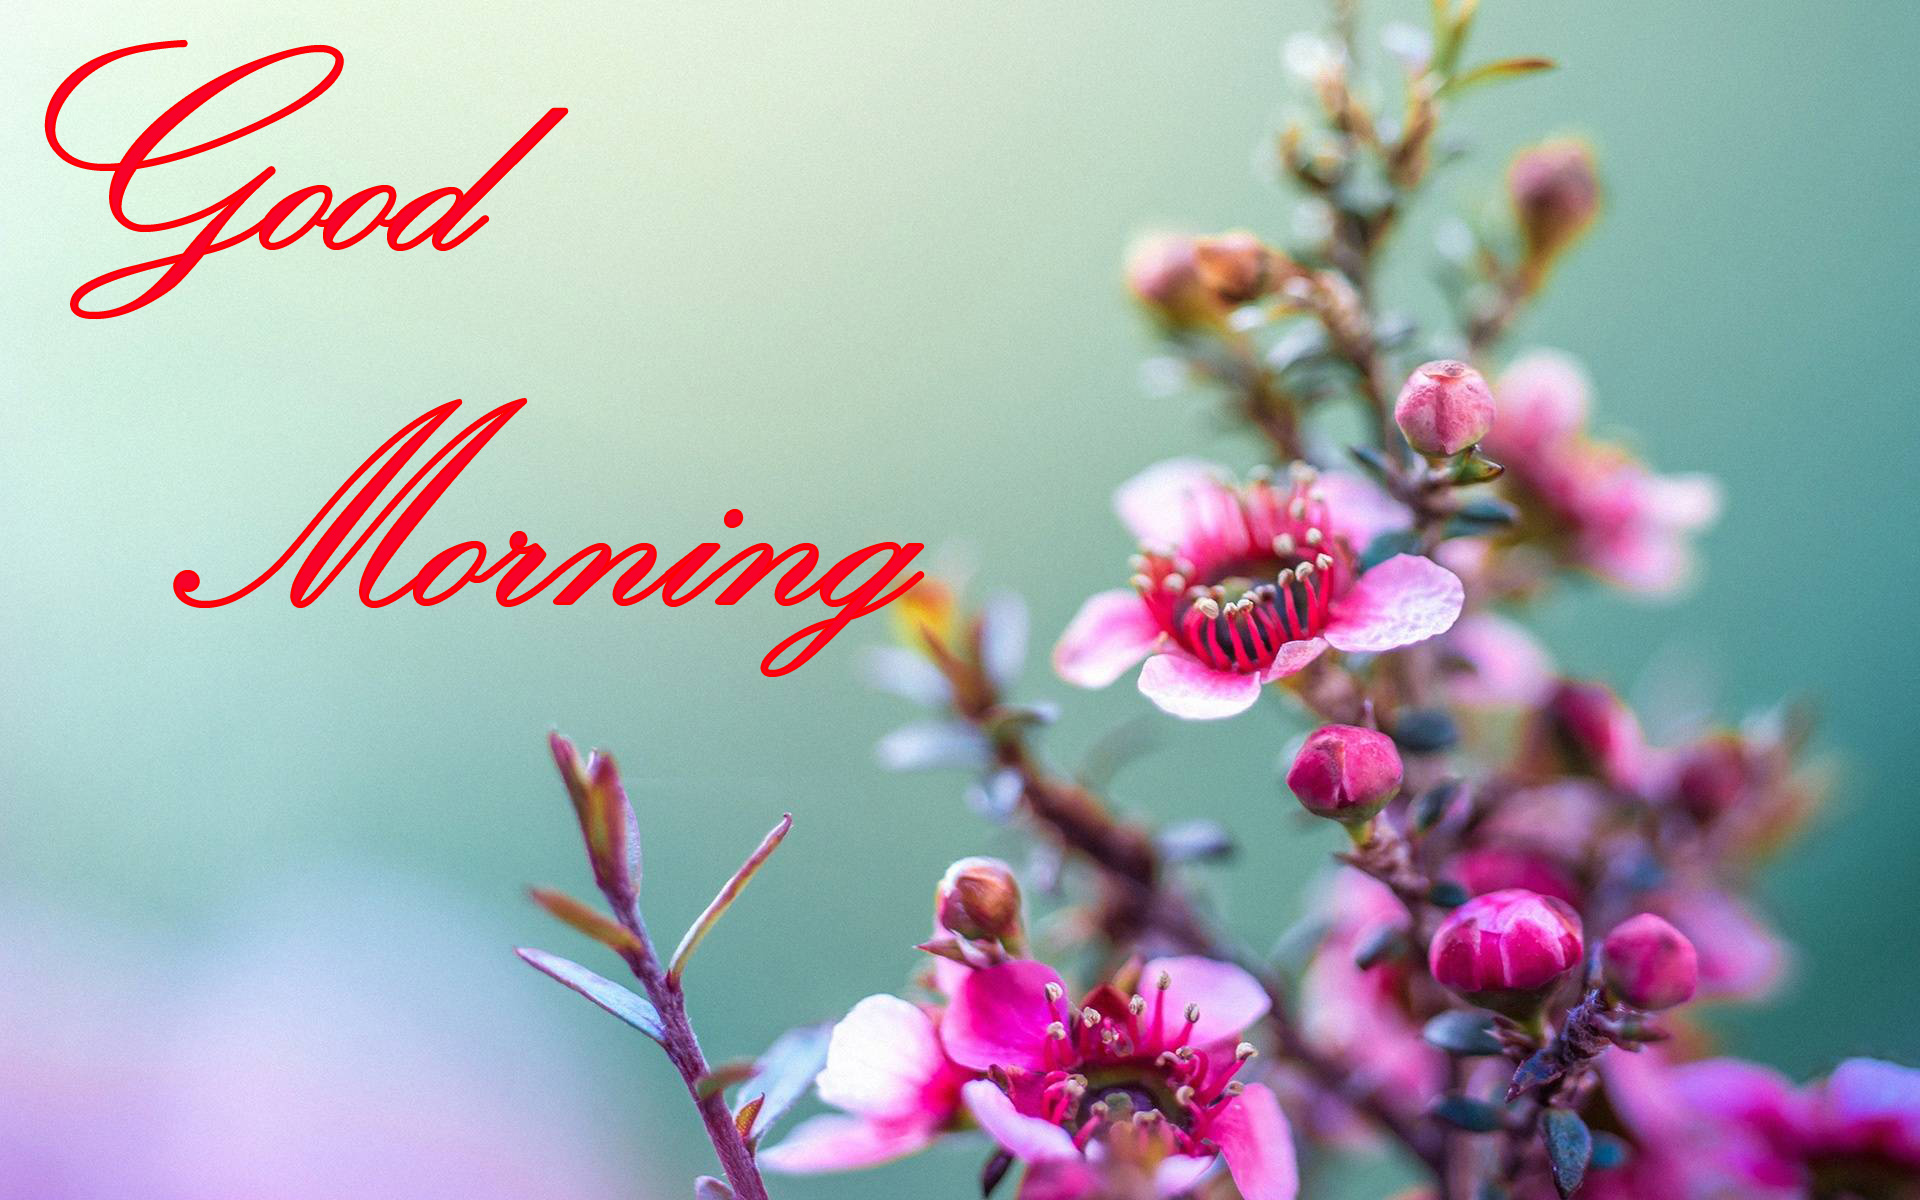 Good Morning Images Wallpaper Photo Pictures Pics Download